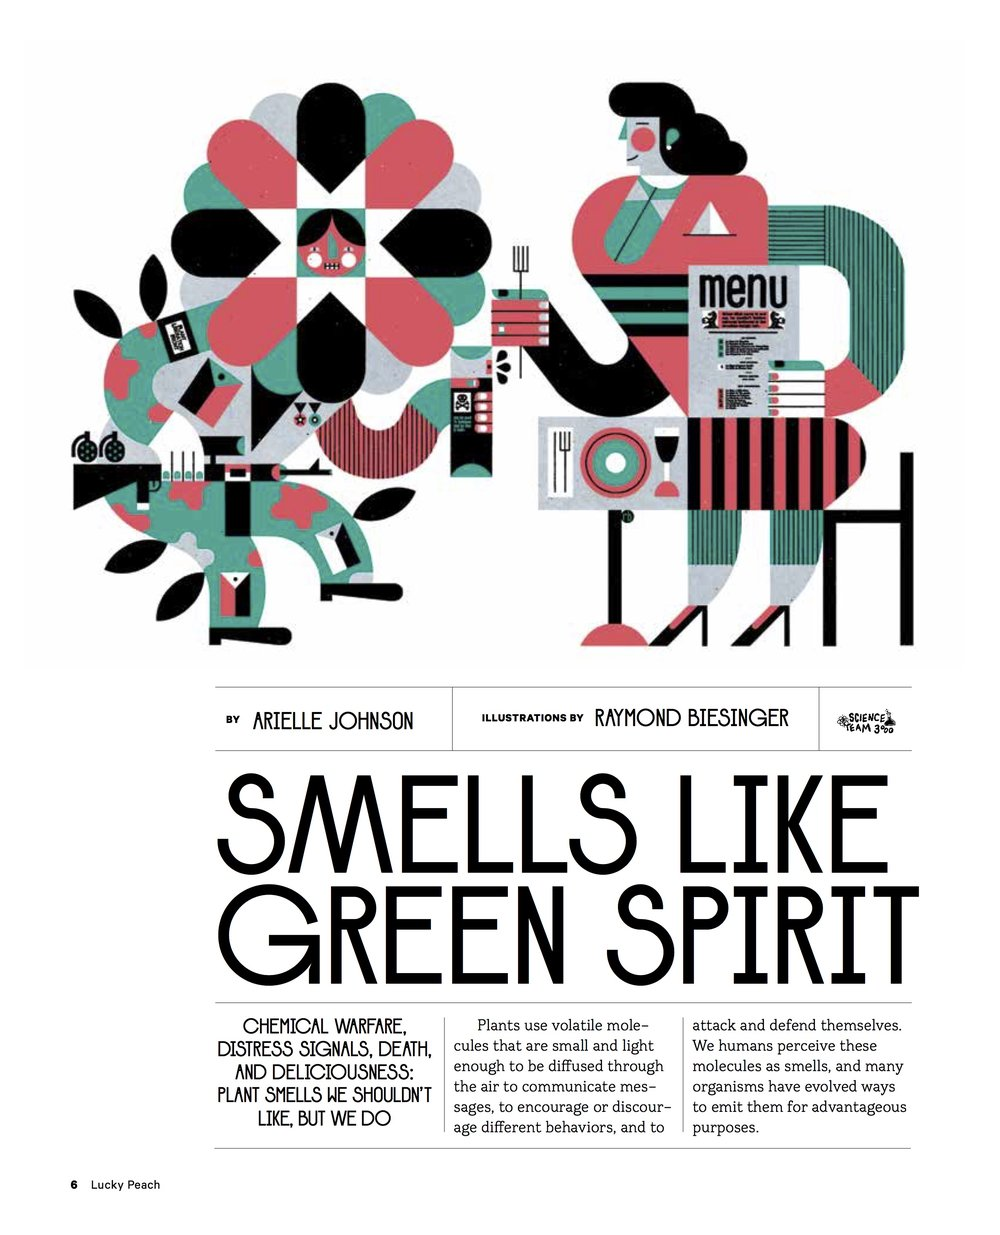 Smells Like Green Spirit - From Lucky Peach: The Plant Kingdom Issueread more